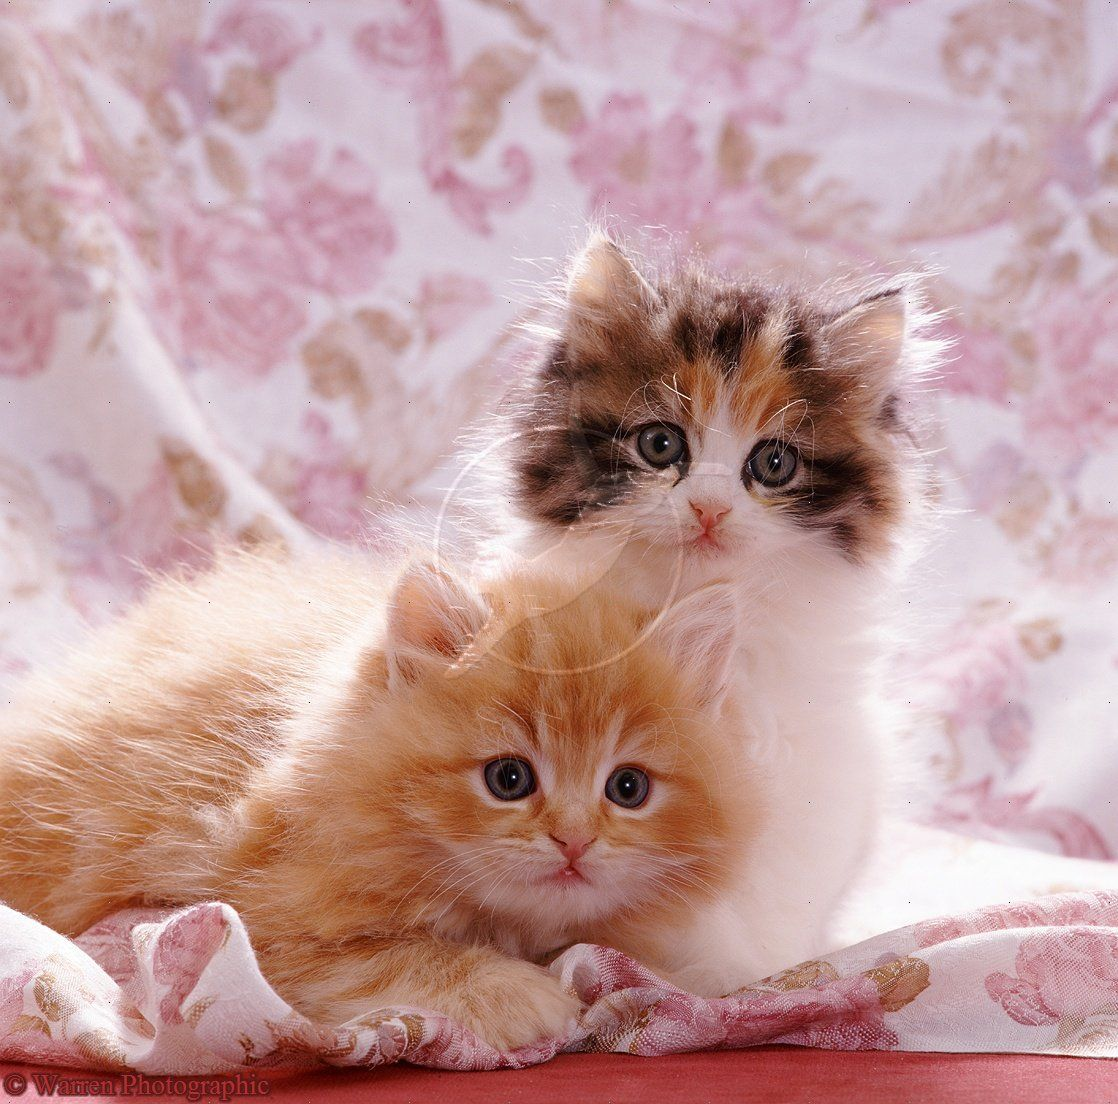 cute cats images very cute cat and kitten picture cute